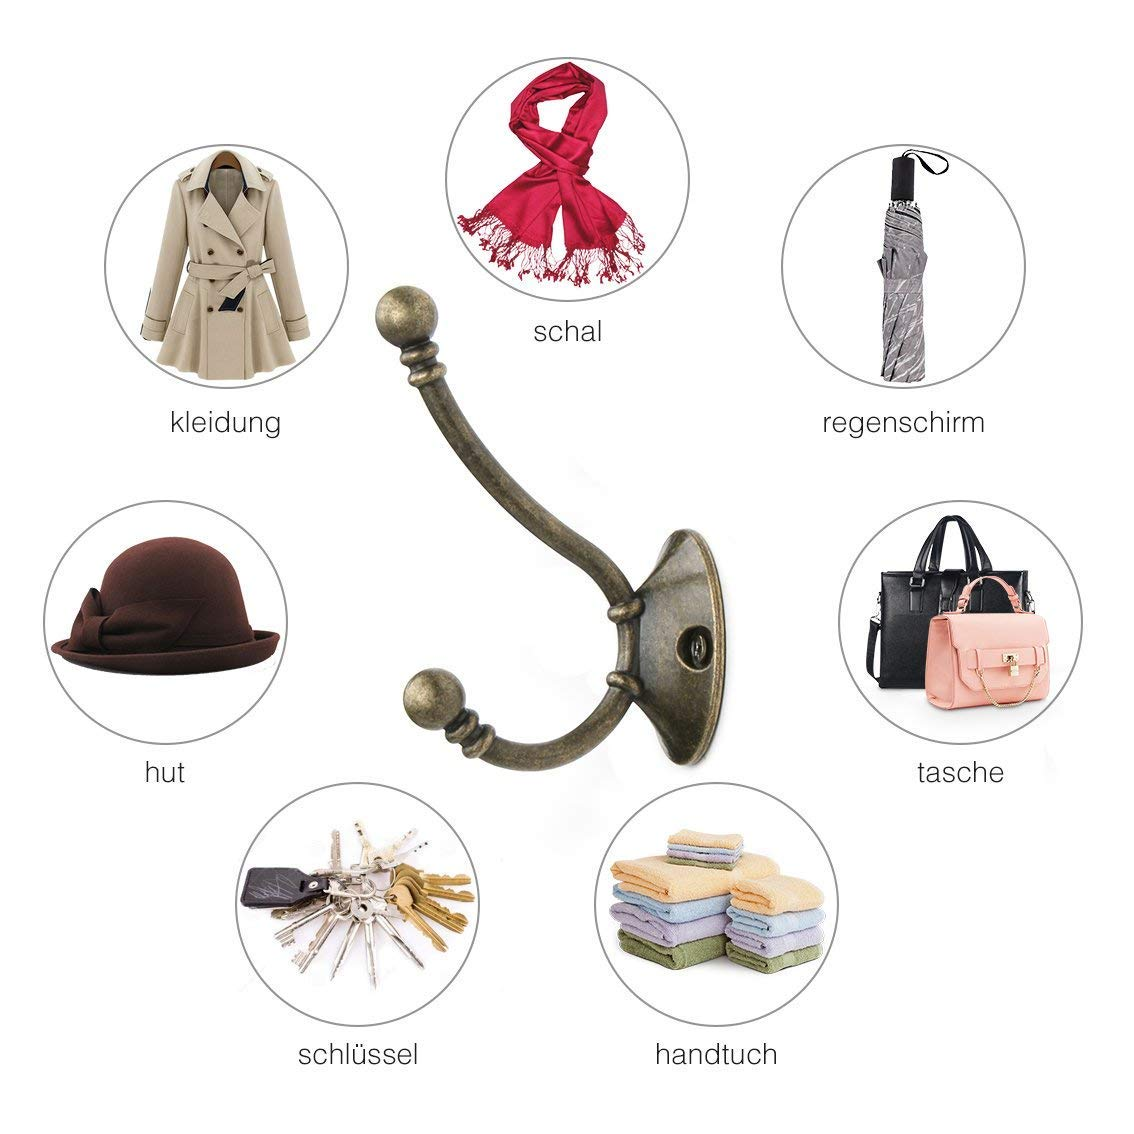 Coat Hooks Vintage Antique Wall Mounted double Hooks Hanger 8pcs Heavy Duty Hooks for Kitchen Bathroom Bedroom Office Lavatory Closets Mounting Screws Provided